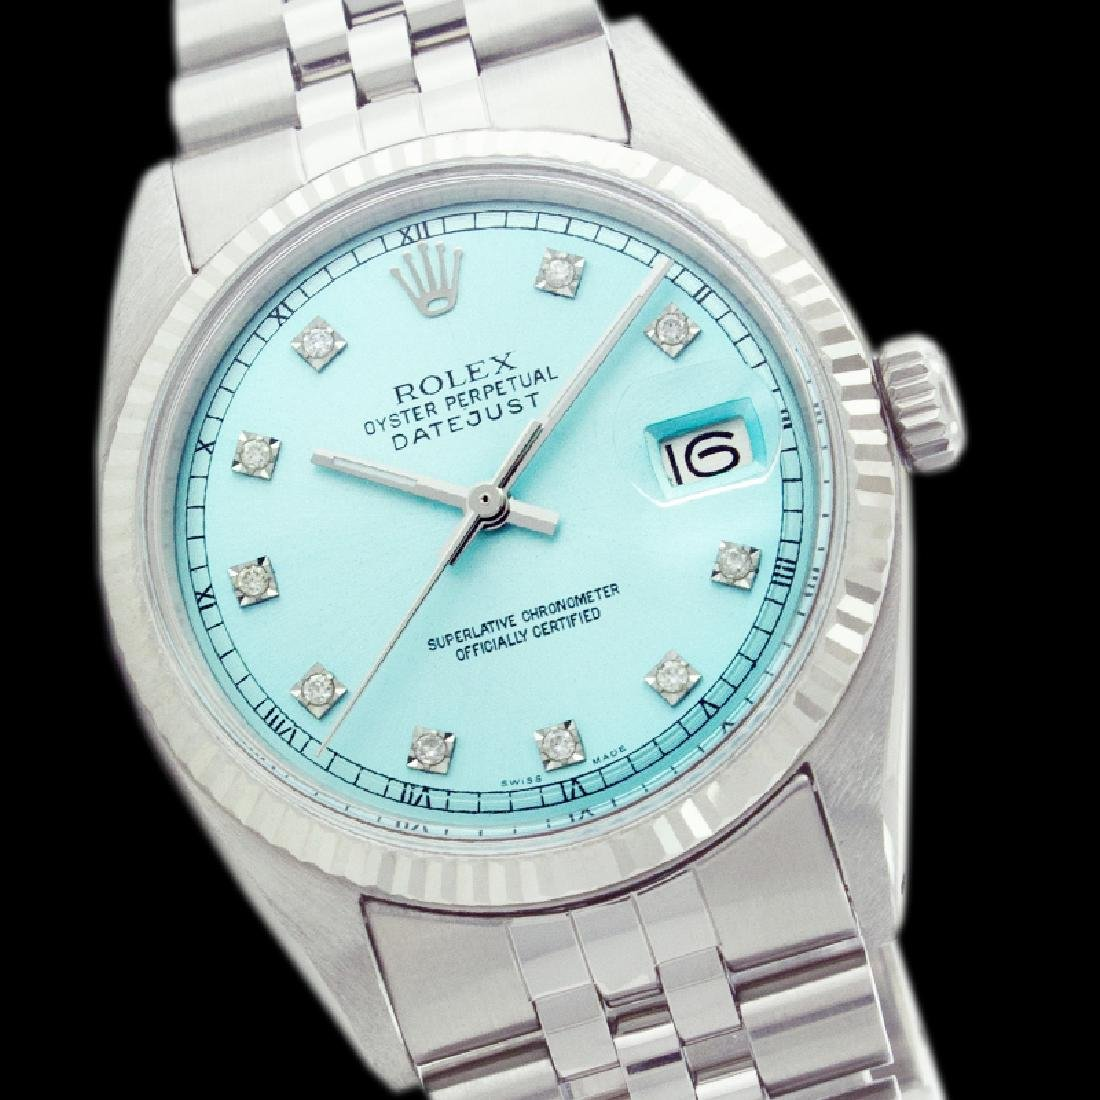 Rolex Ladies Stainless Steel, Diamond Dial with Fluted